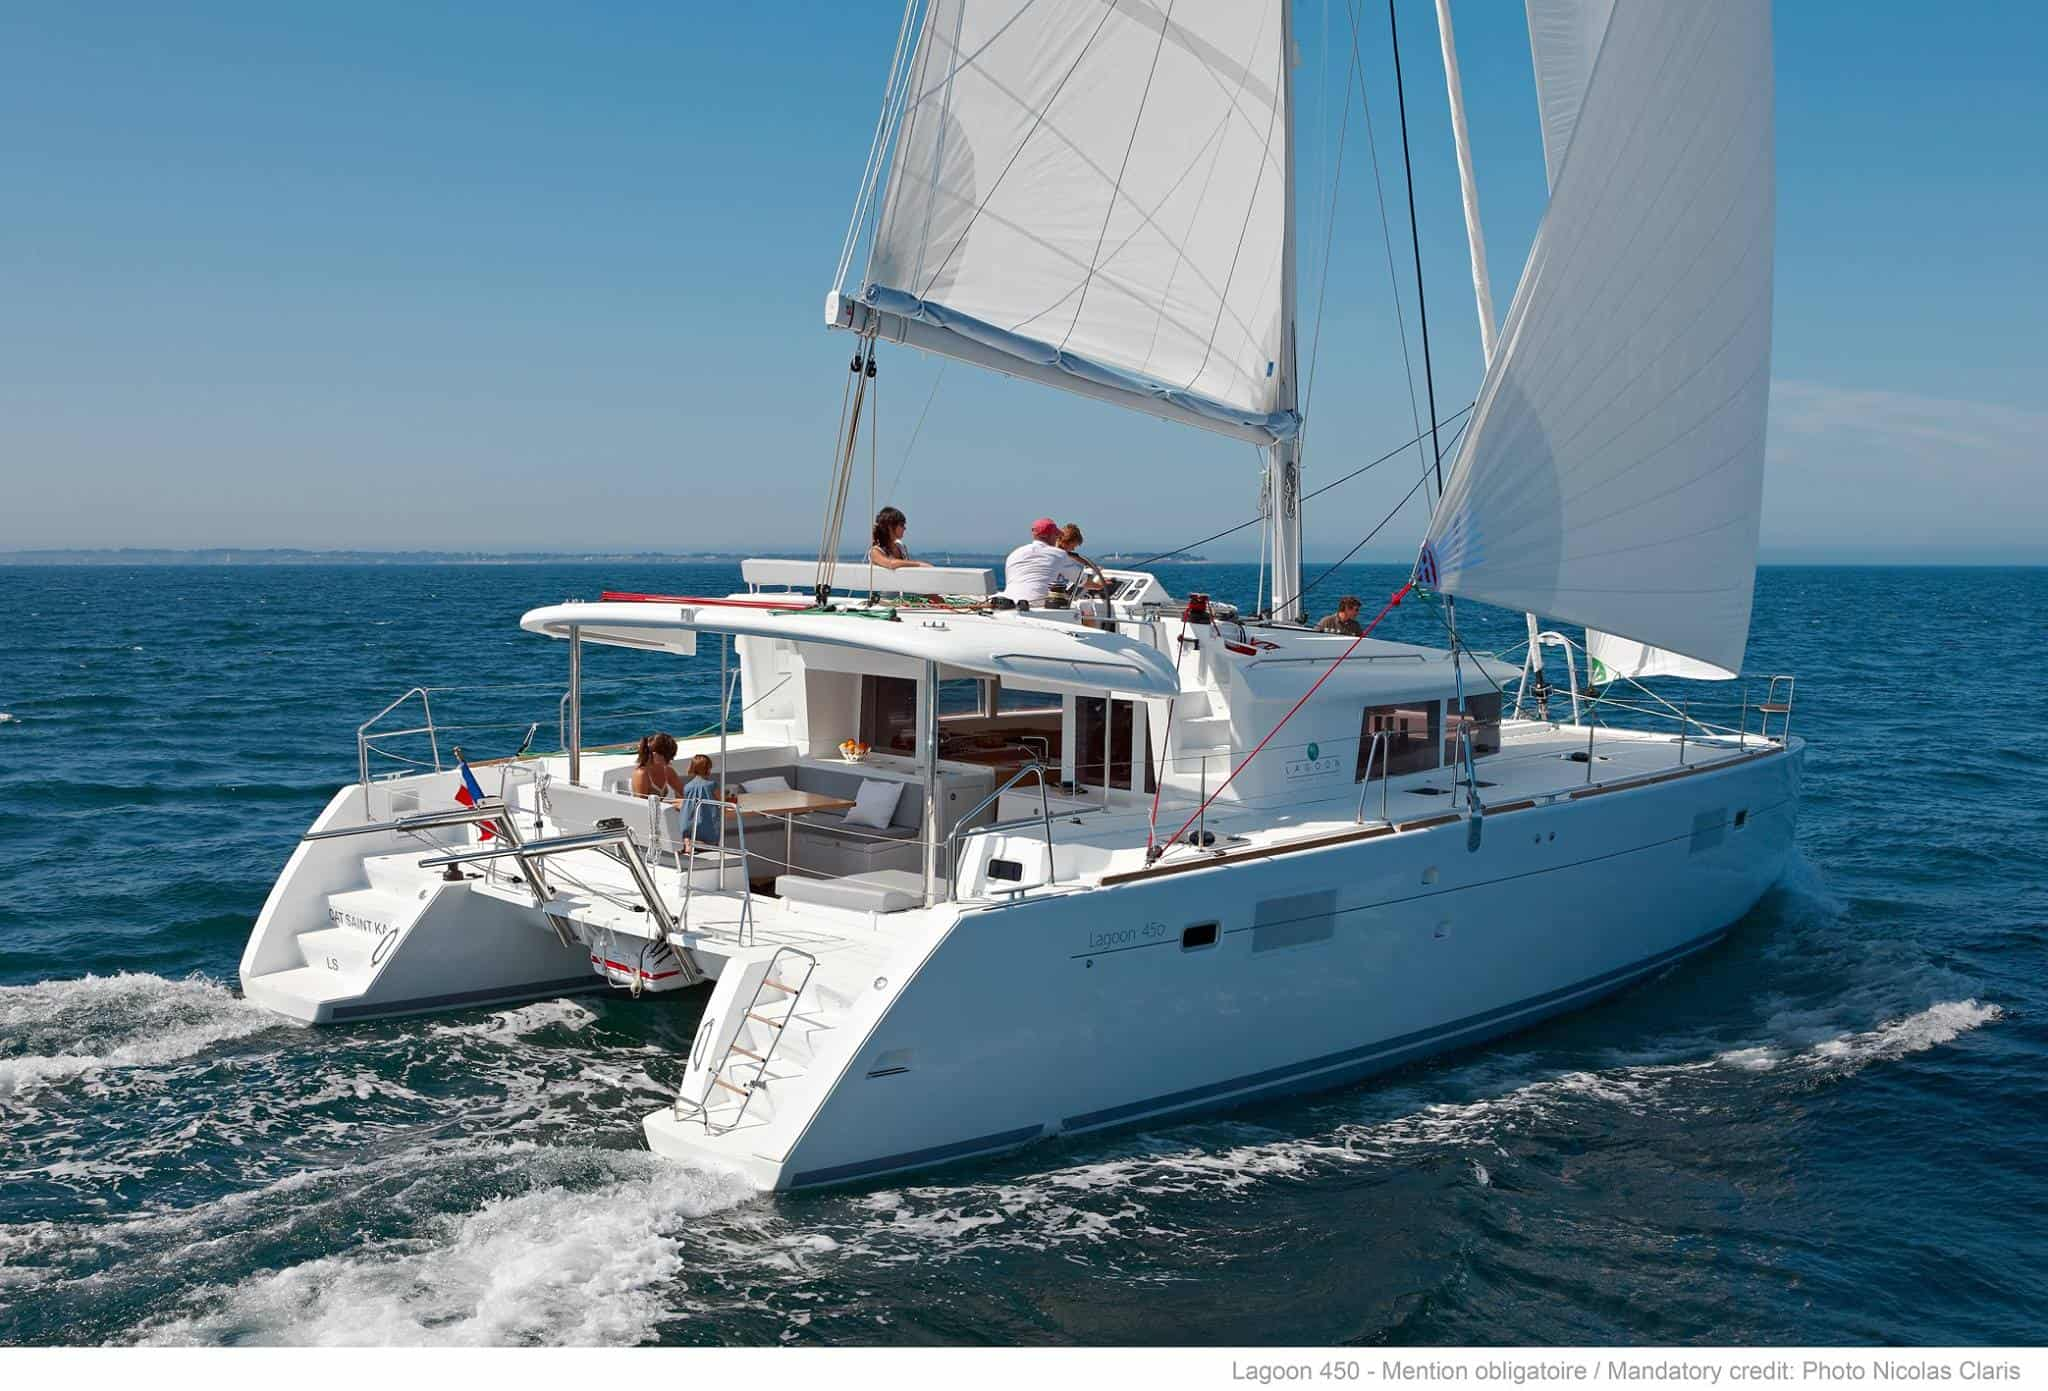 Houston Sailtime Lagoon 450 Catamaran at sea